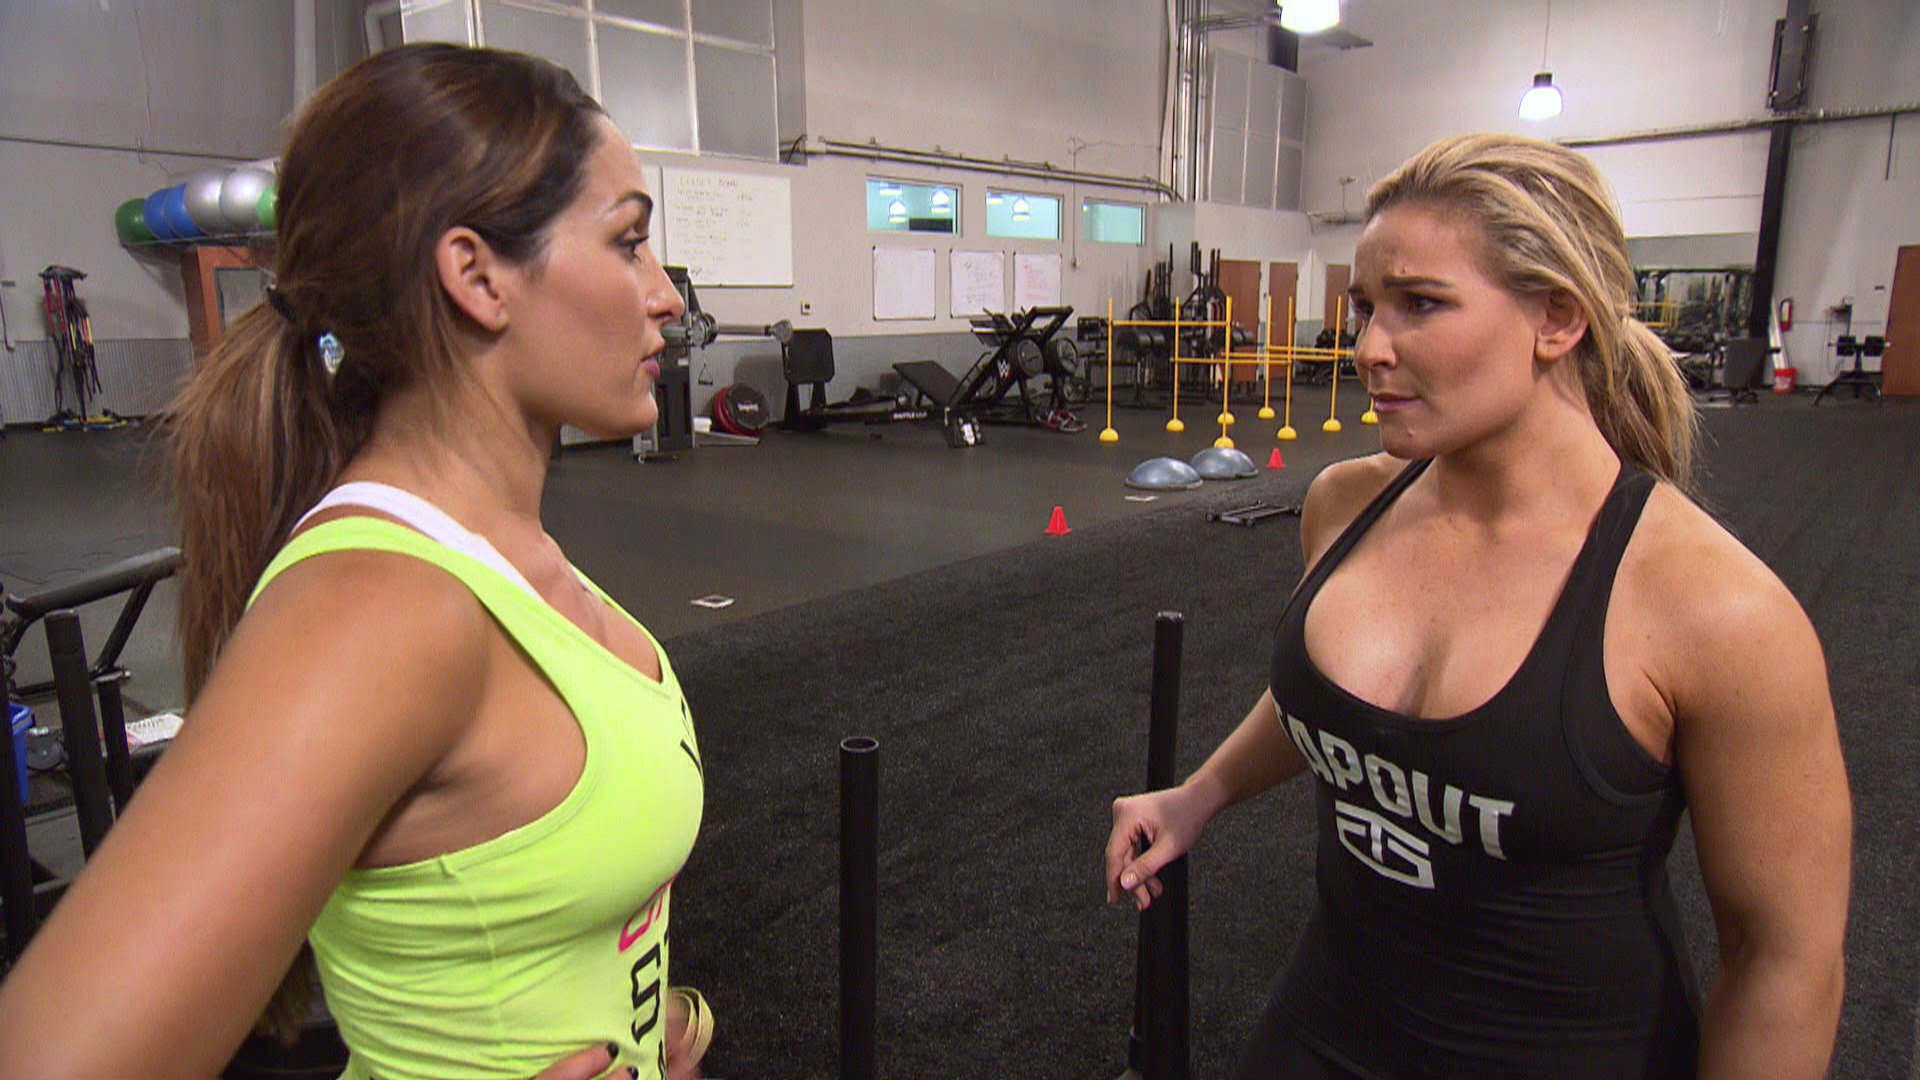 Nikki hands Nattie an ultimatum: Get on board, or she'll find a new training partner.